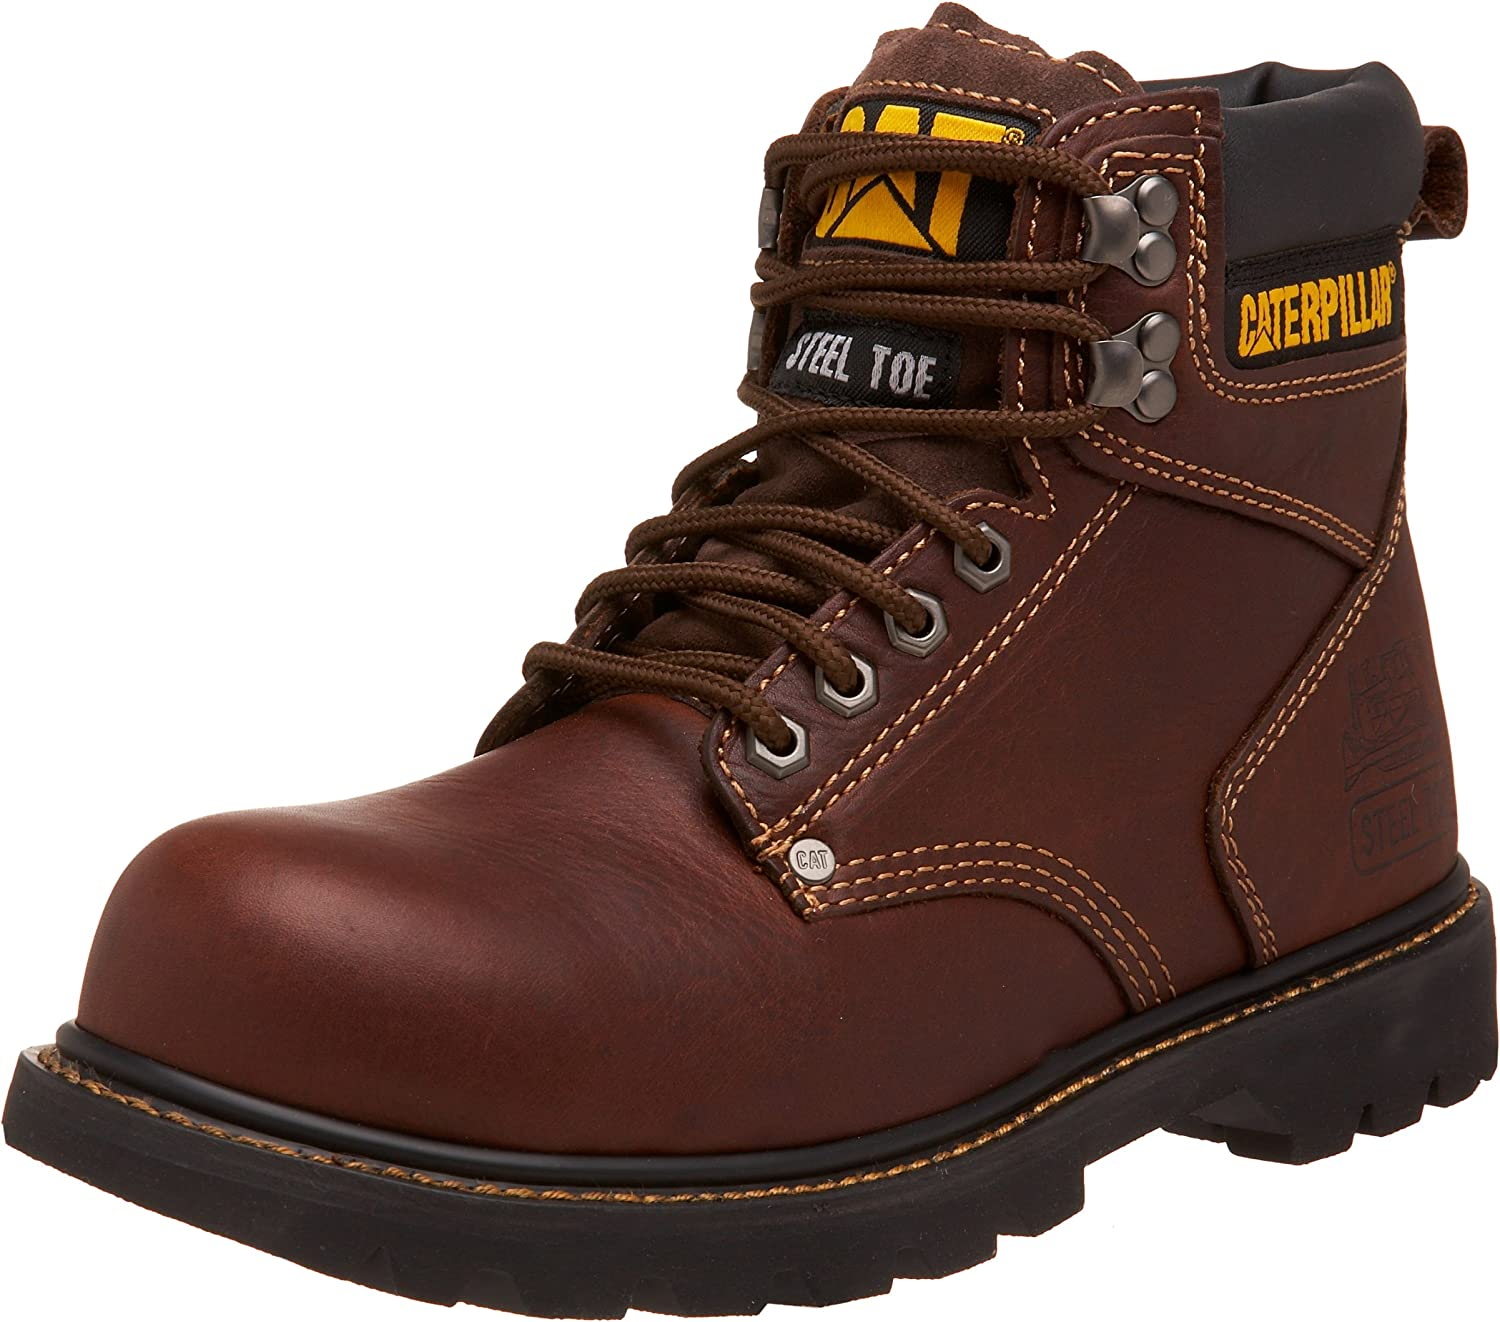 Caterpillar Men's Second Shift Steel Toe Leather Work Boot : Amazon.ca:  Clothing, Shoes & Accessories